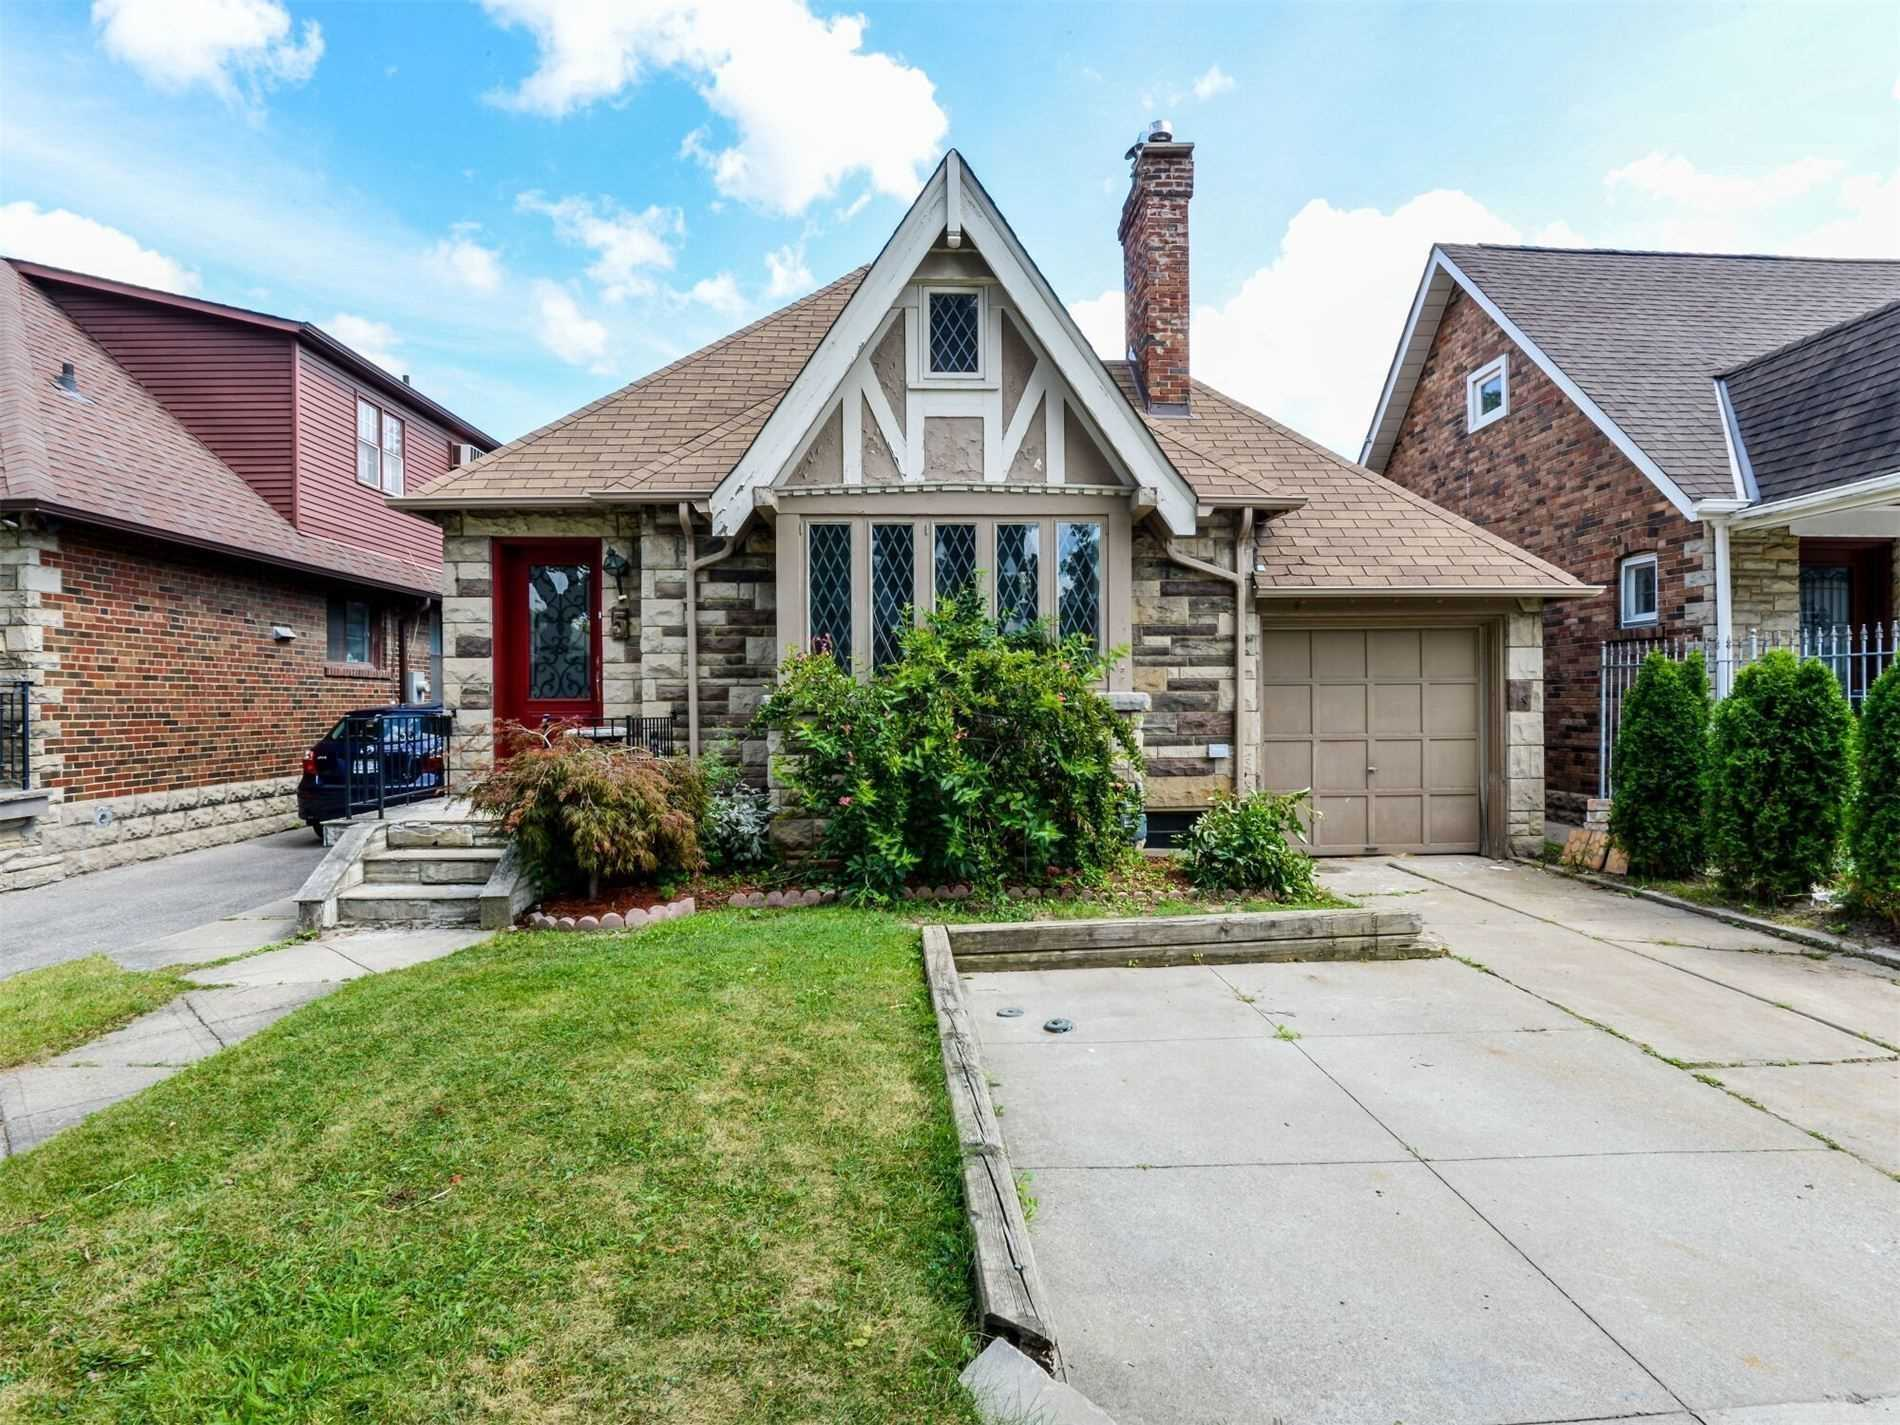 Detached house For Sale In Toronto - 5 Fairleigh Cres, Toronto, Ontario, Canada M6C3R7 , 4 Bedrooms Bedrooms, ,3 BathroomsBathrooms,Detached,For Sale,Fairleigh